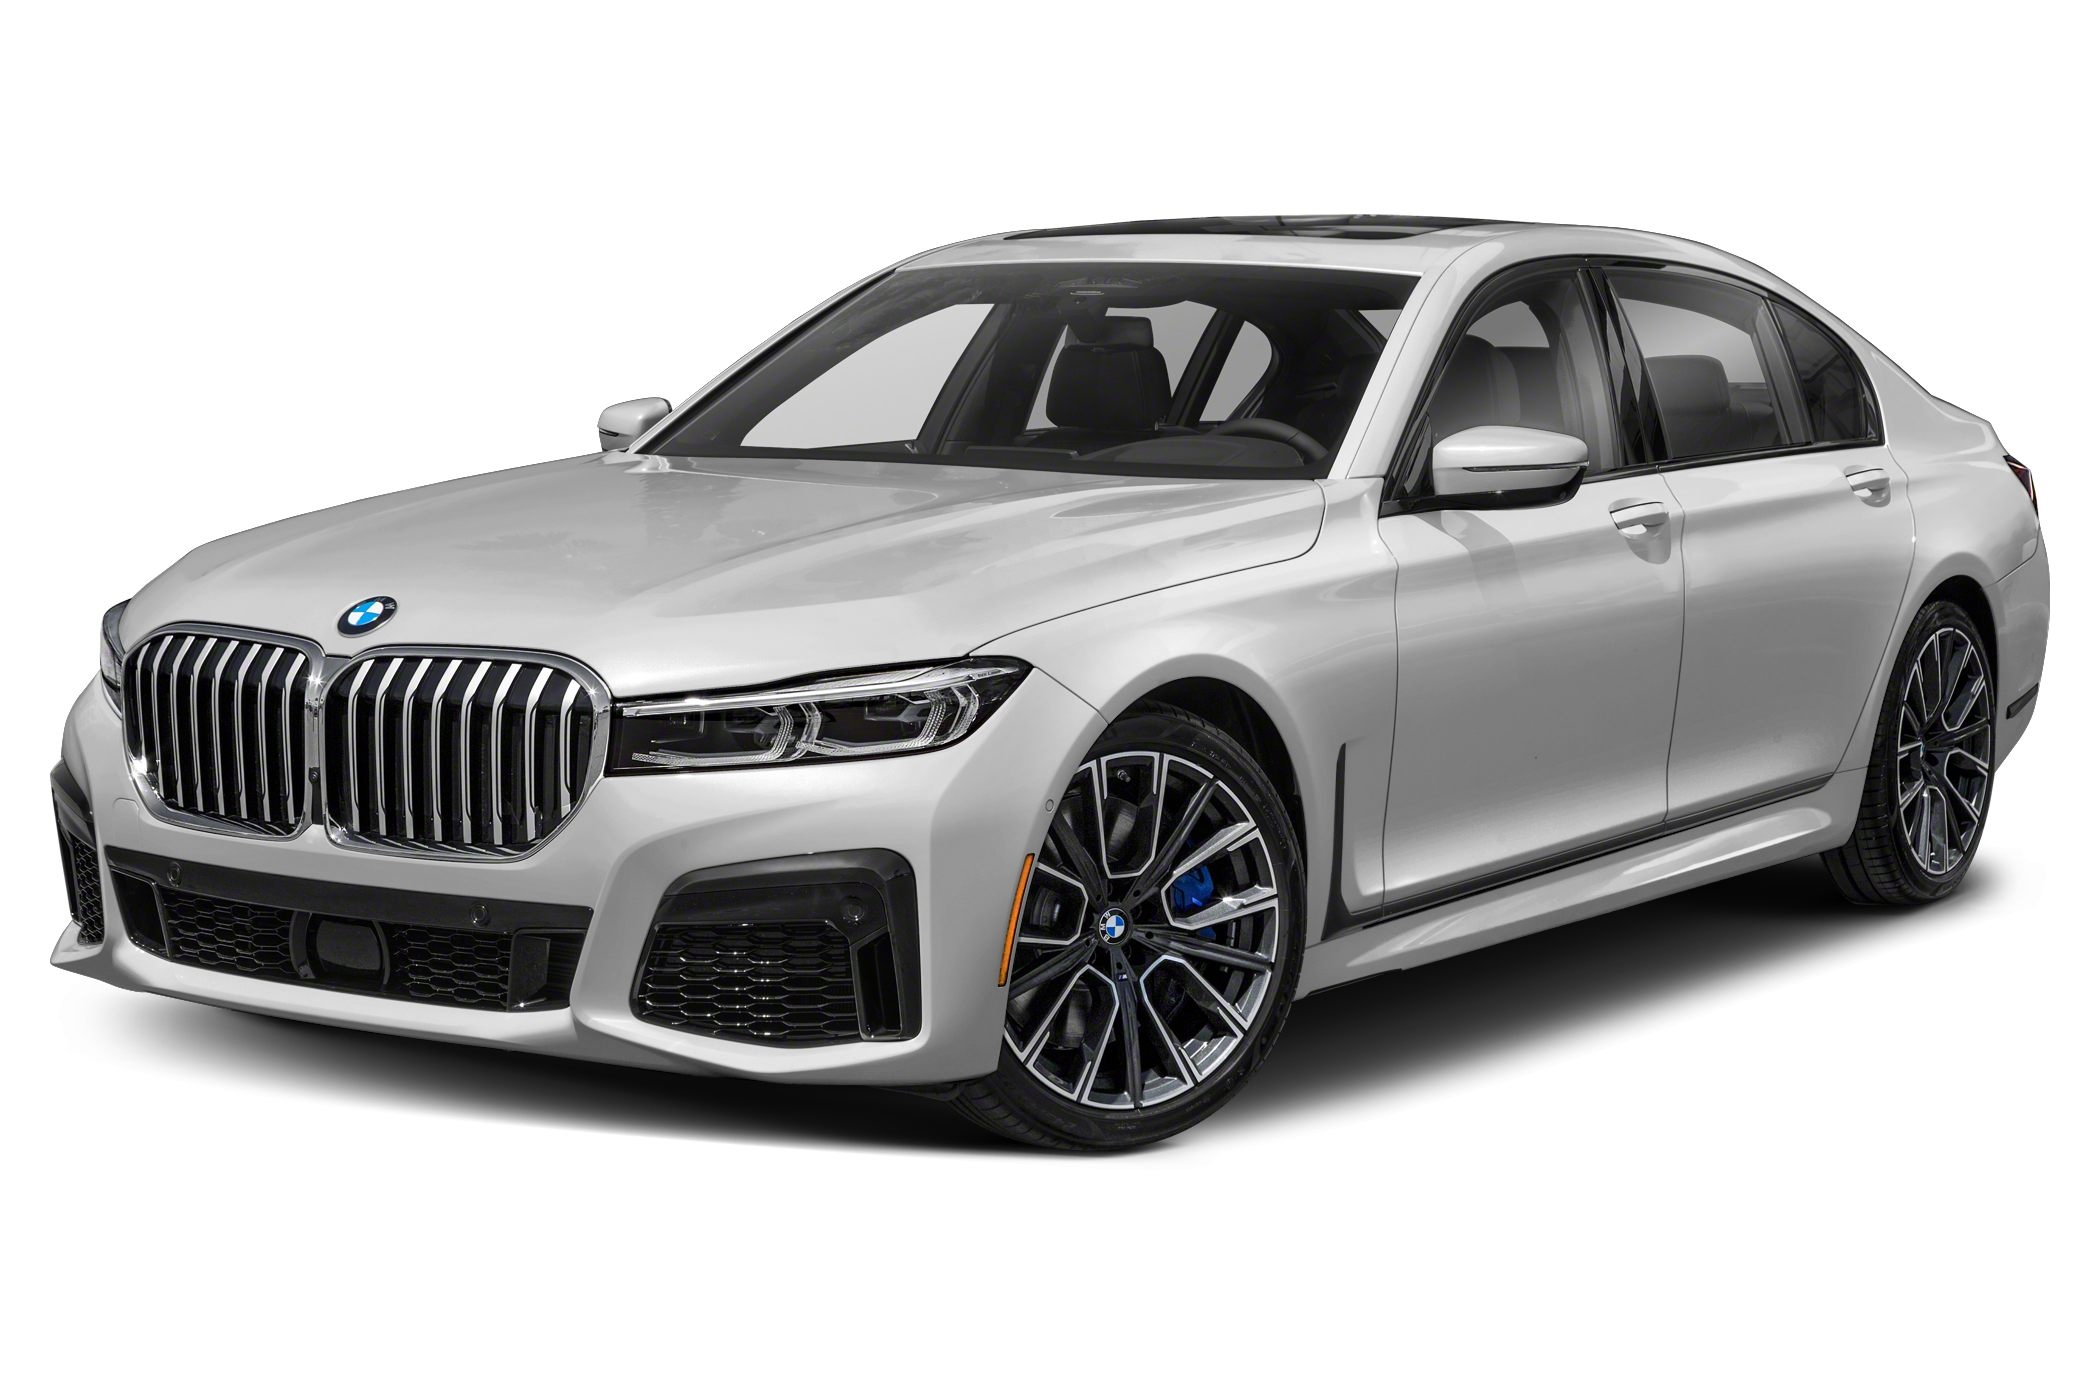 2021 BMW 750Li Xdrive Redesign and Review